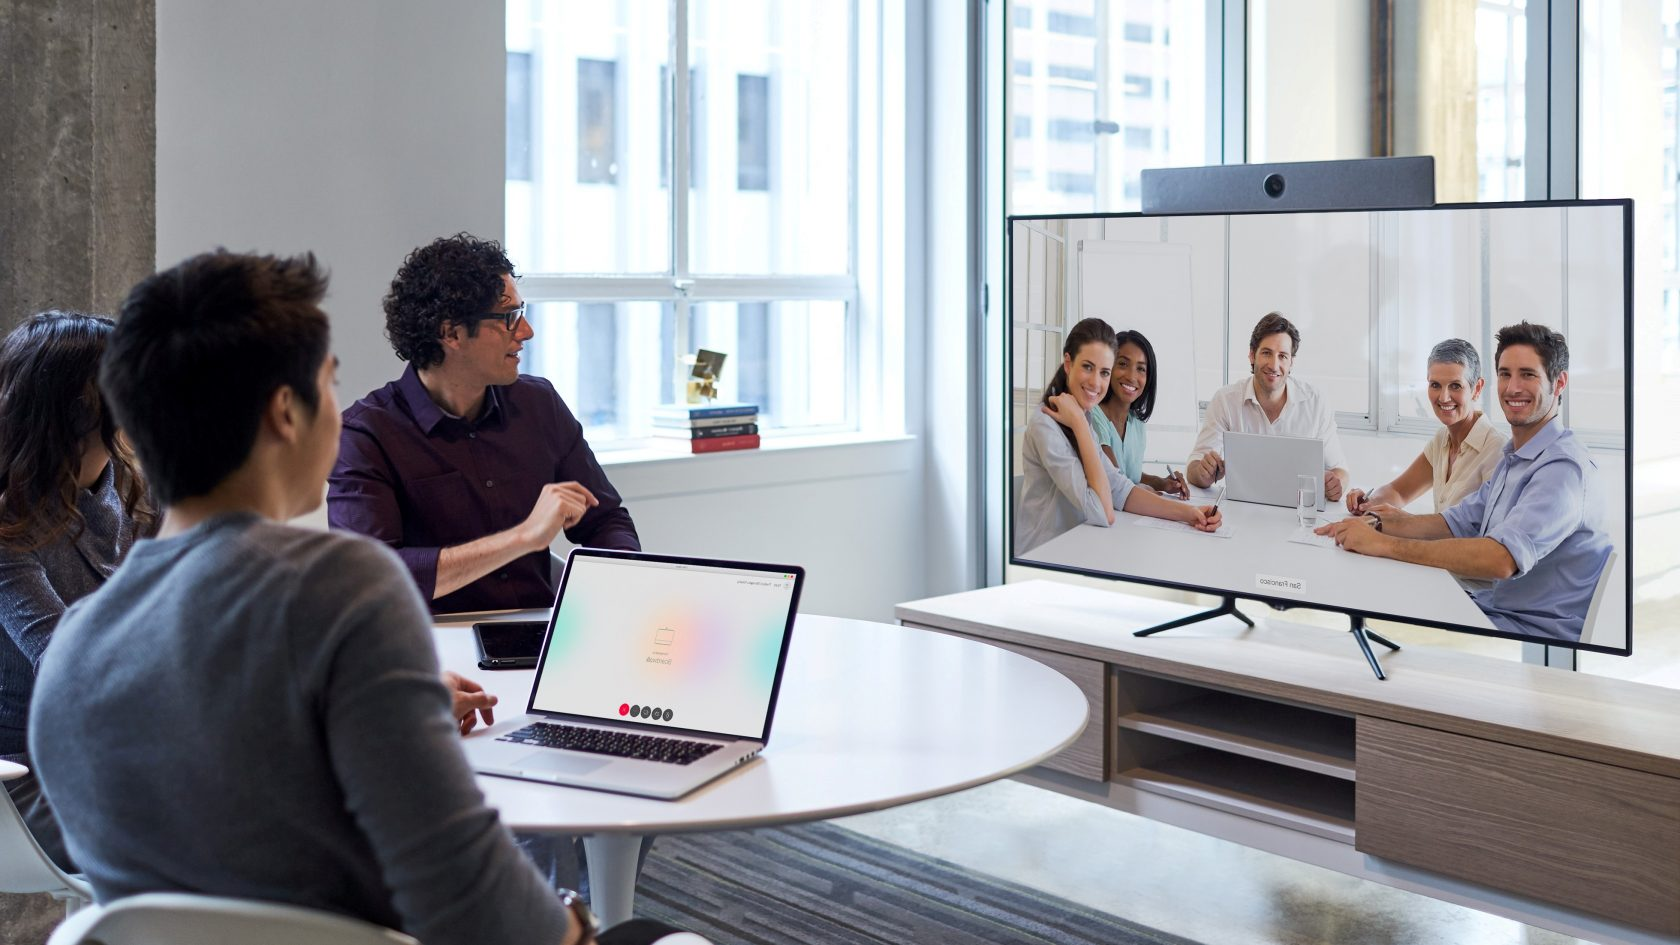 Explore the latest video conferencing technology